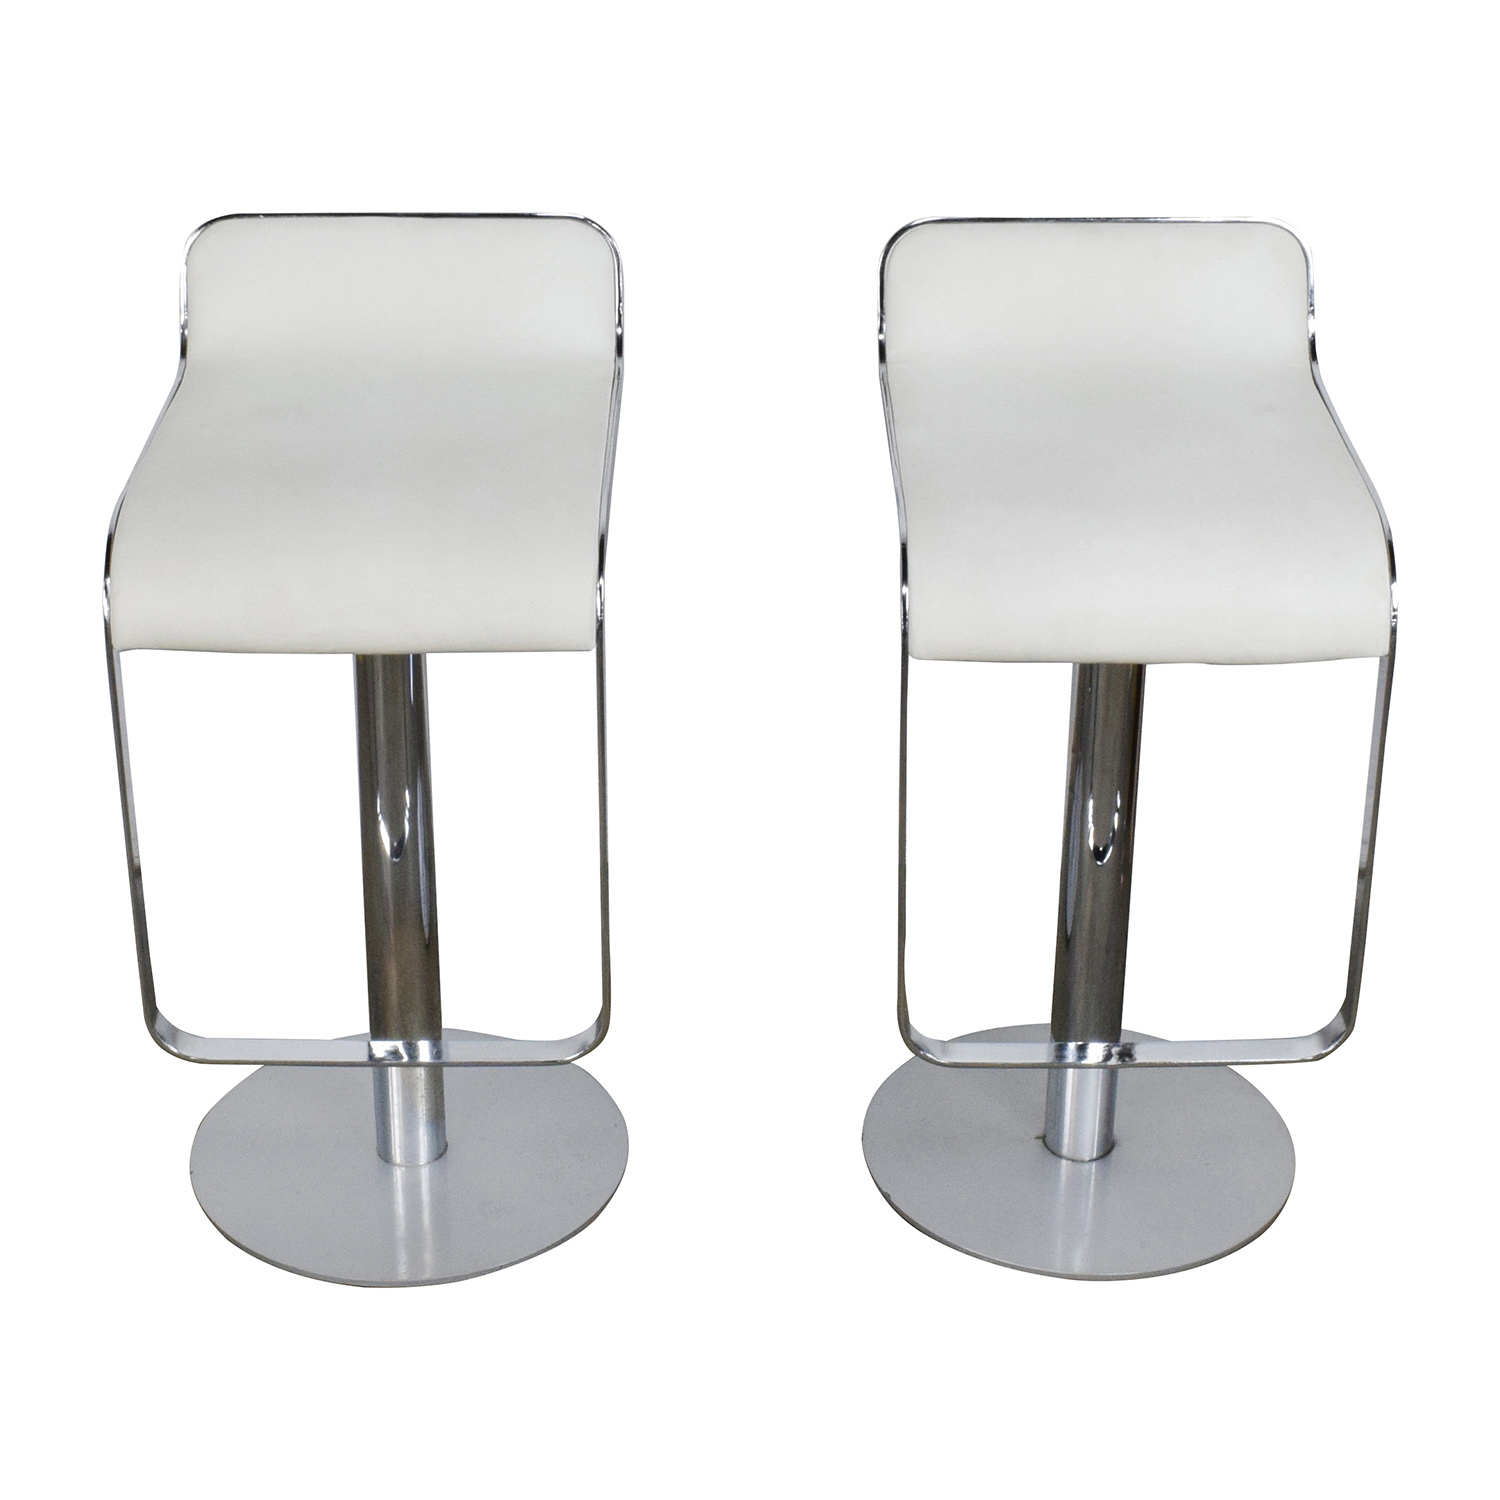 all modern chairs stakmore folding table and 88 off white leather bar stools